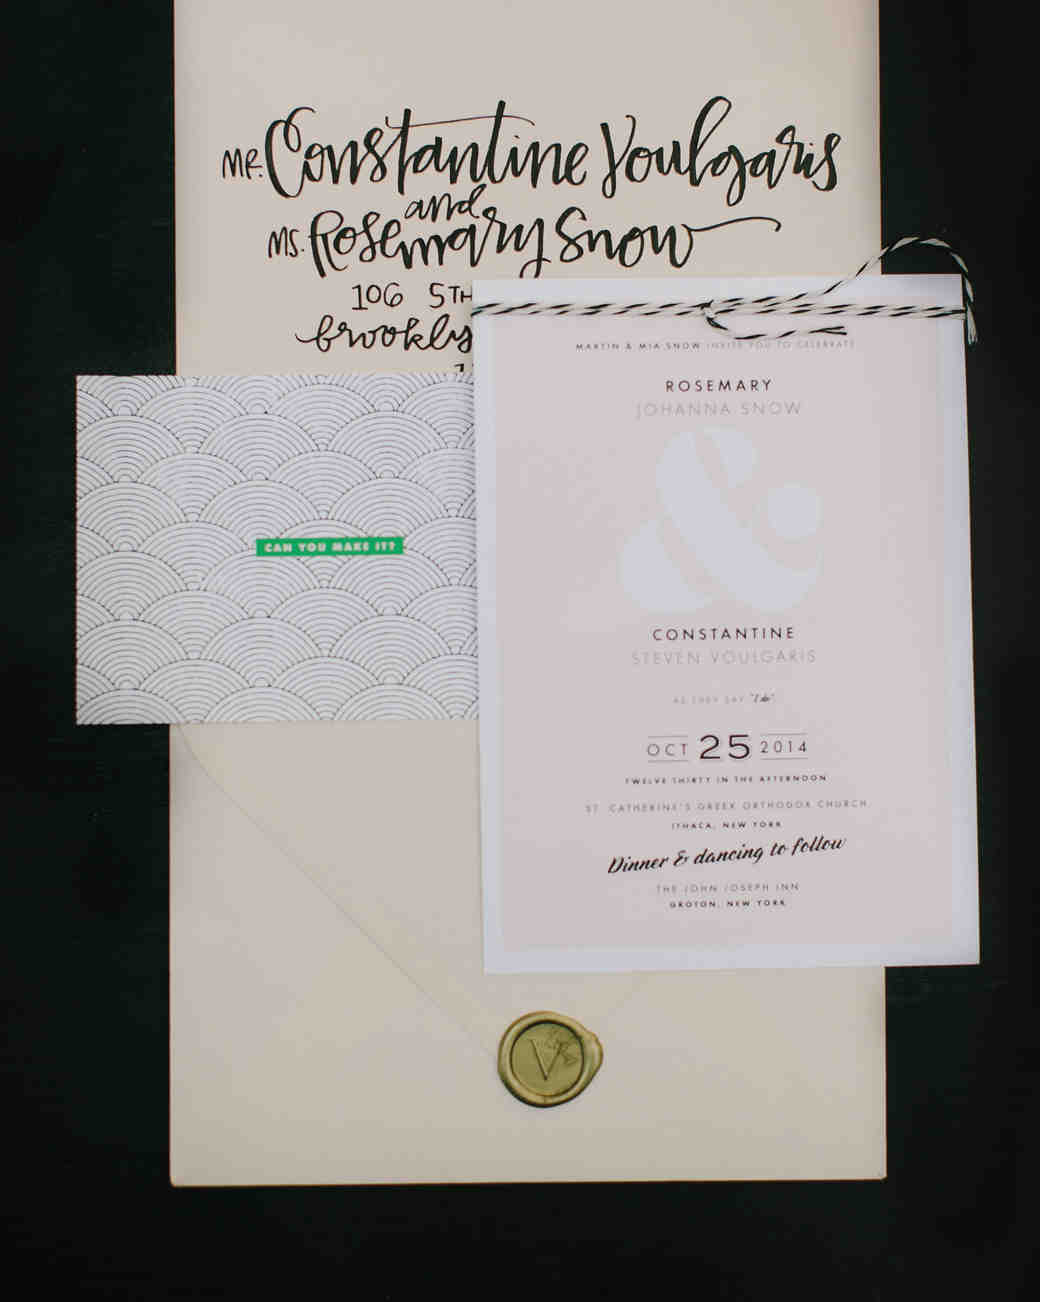 rosie-constantine-wedding-invite-1-s112177-1015.jpg